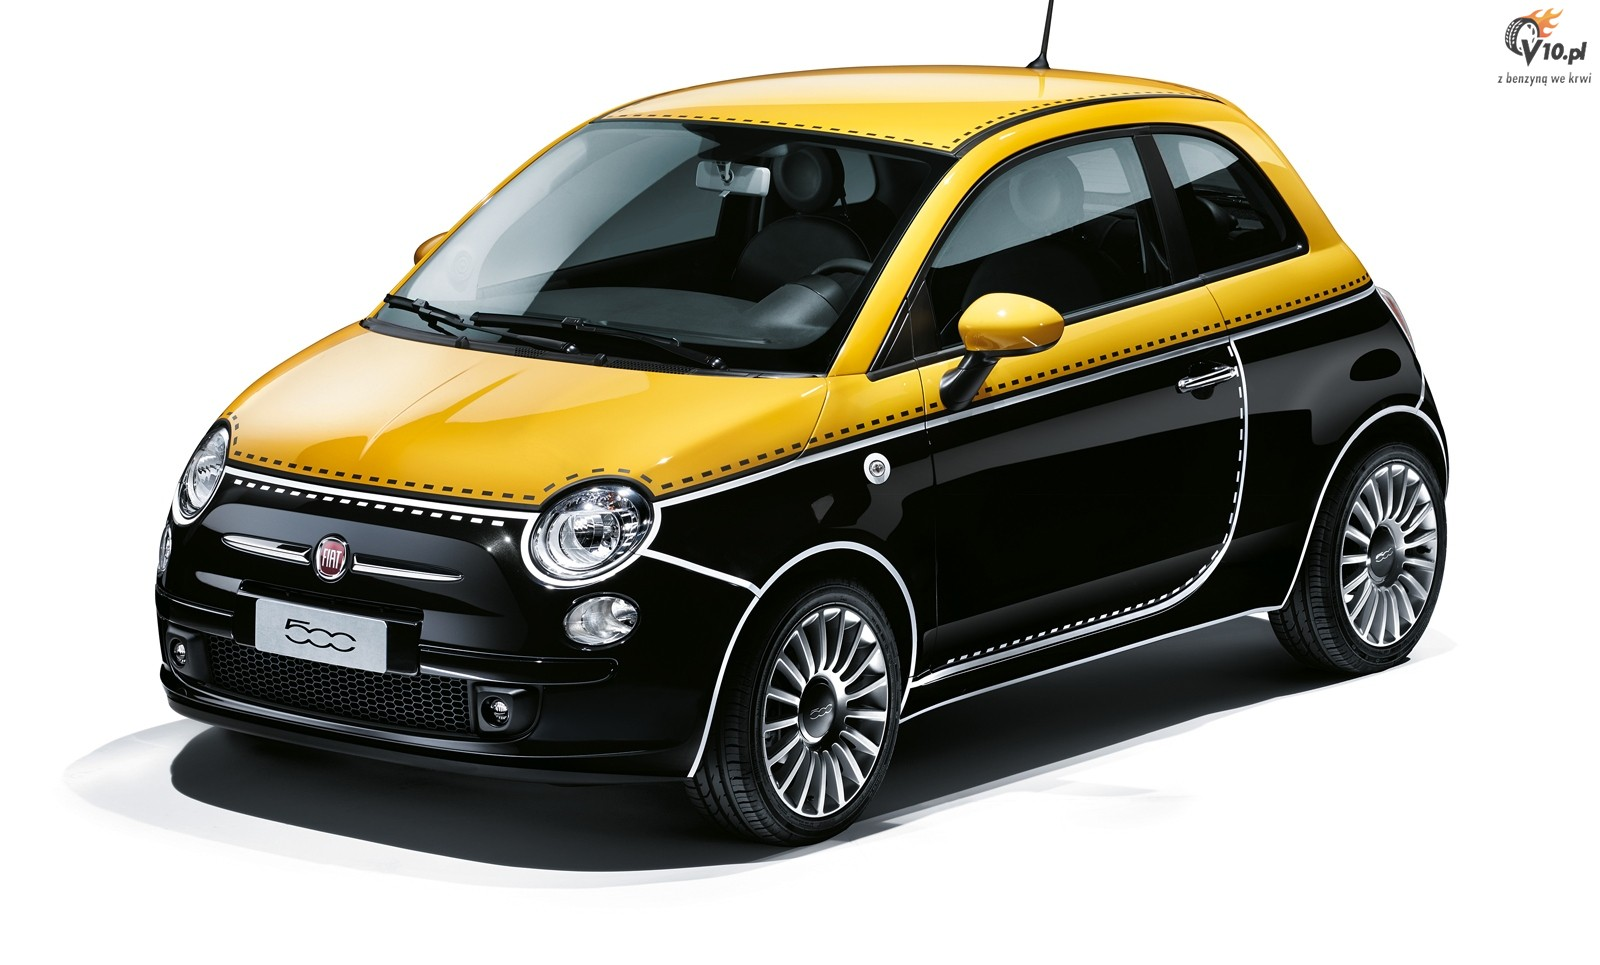 fiat punto supersport html with Fiat 500 L Ron Arad 2 Artykul 117247 2 on Desenhos De Carros Para Pintar as well Citroen Ds3 Racing further Abarth Punto Evo Esseesse moreover 283 Fiat Punto 2015 Interior Wallpaper 2 furthermore Opel Corsa 1 3 Cdti Ecoflex.